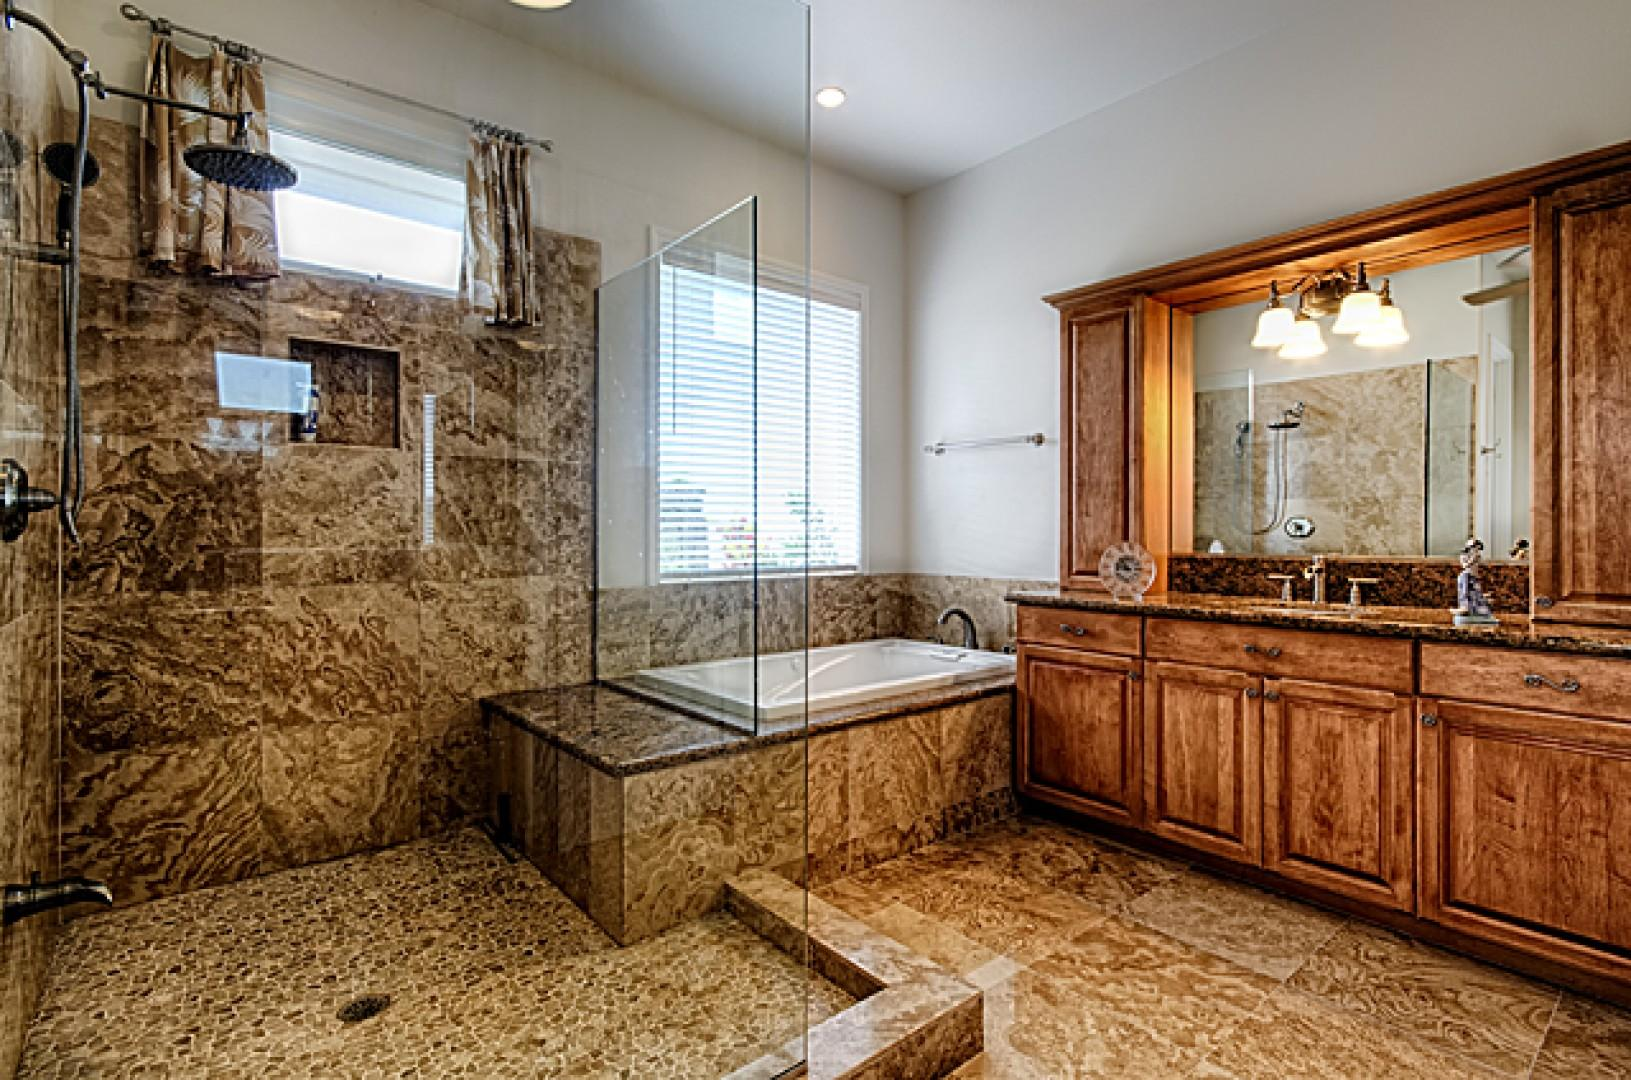 Incredible master bathroom with over-sized luxury shower!